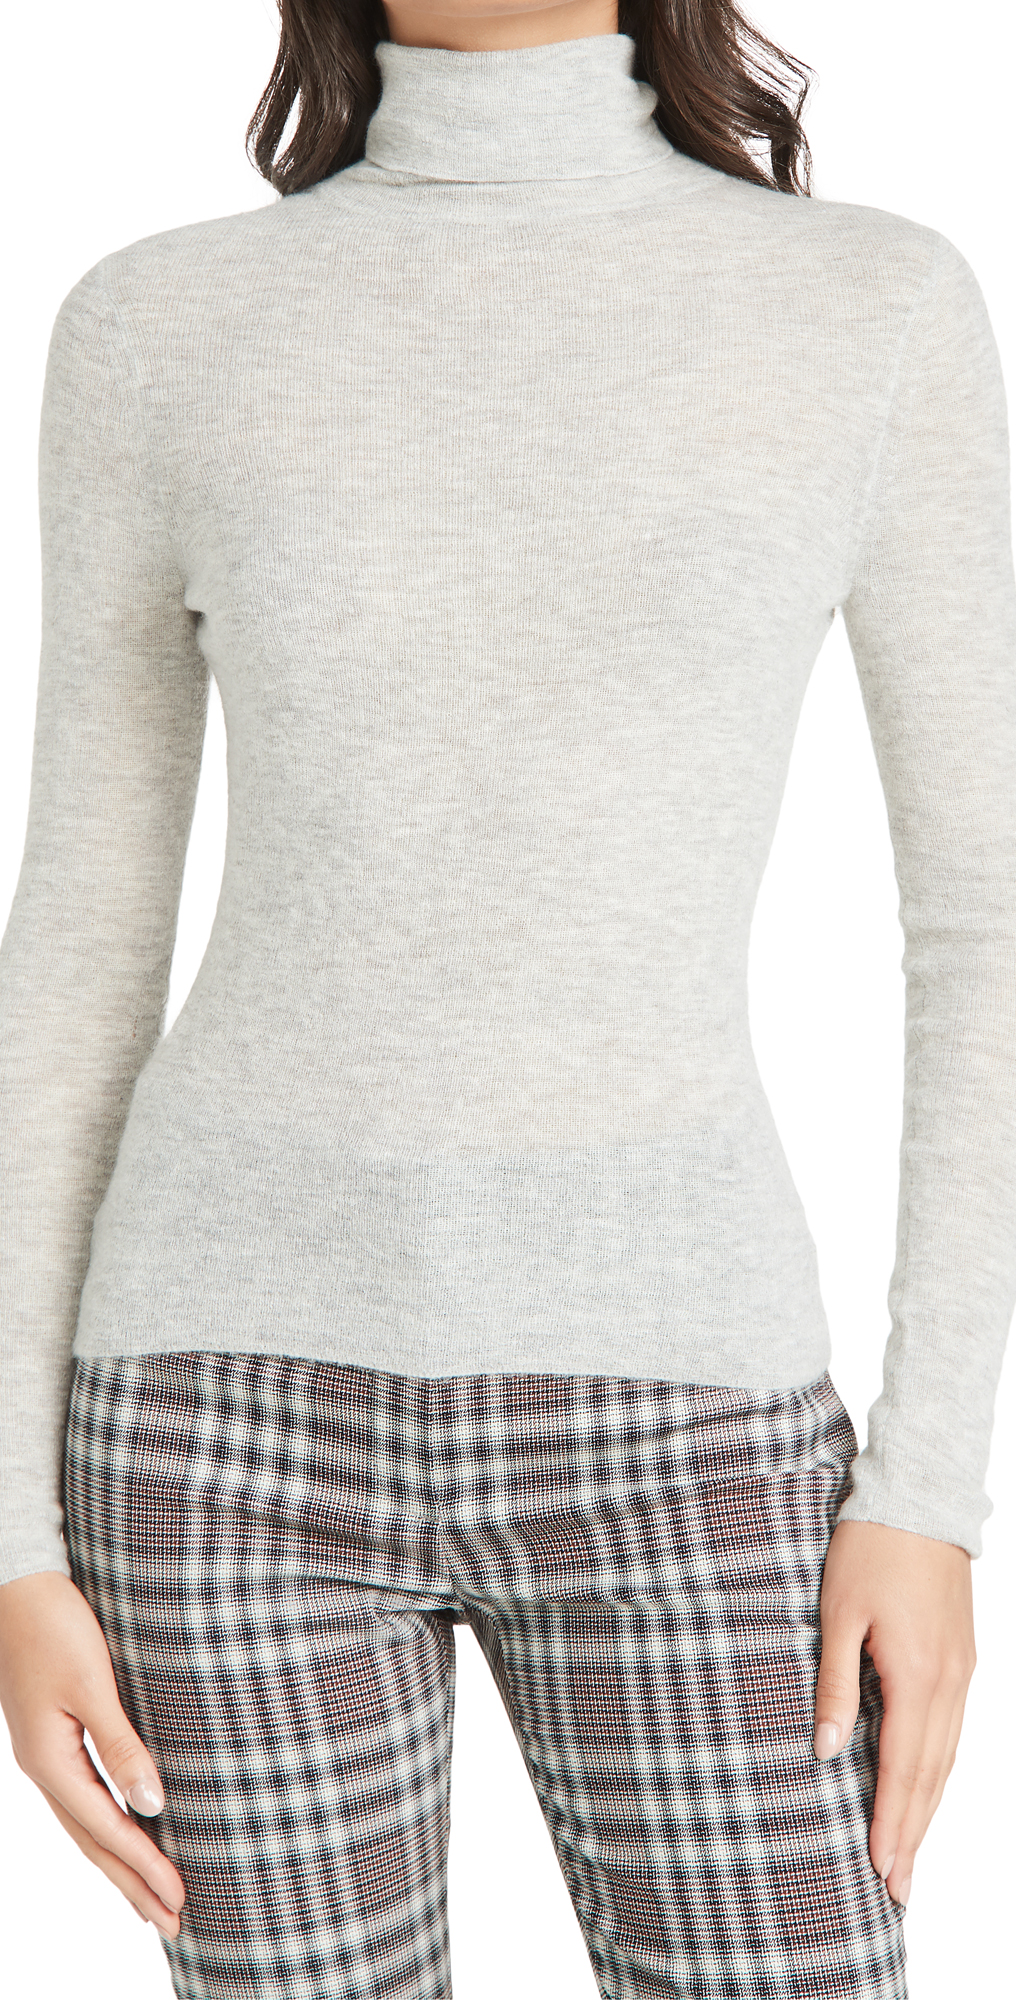 360 SWEATER Janelle Pullover